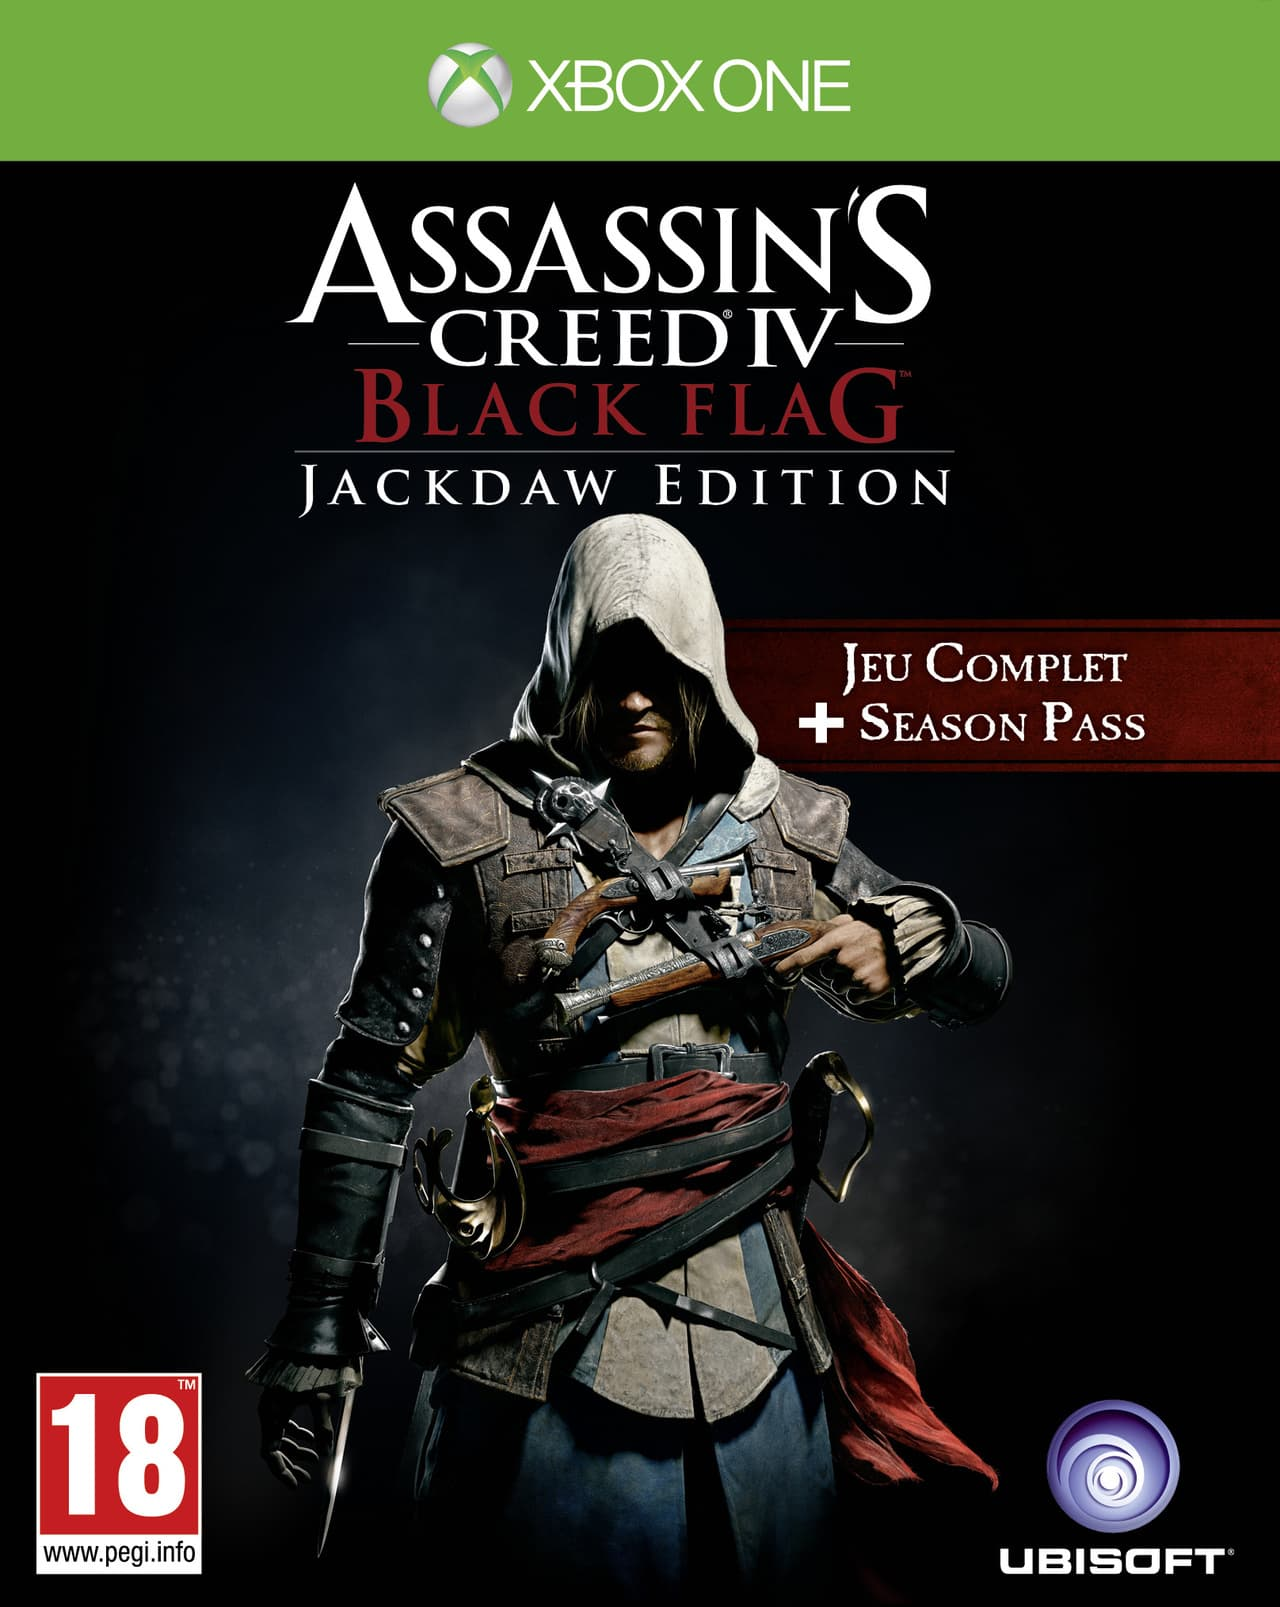 Jaquette Assassin's Creed IV : Black Flag - Jackdaw Edition